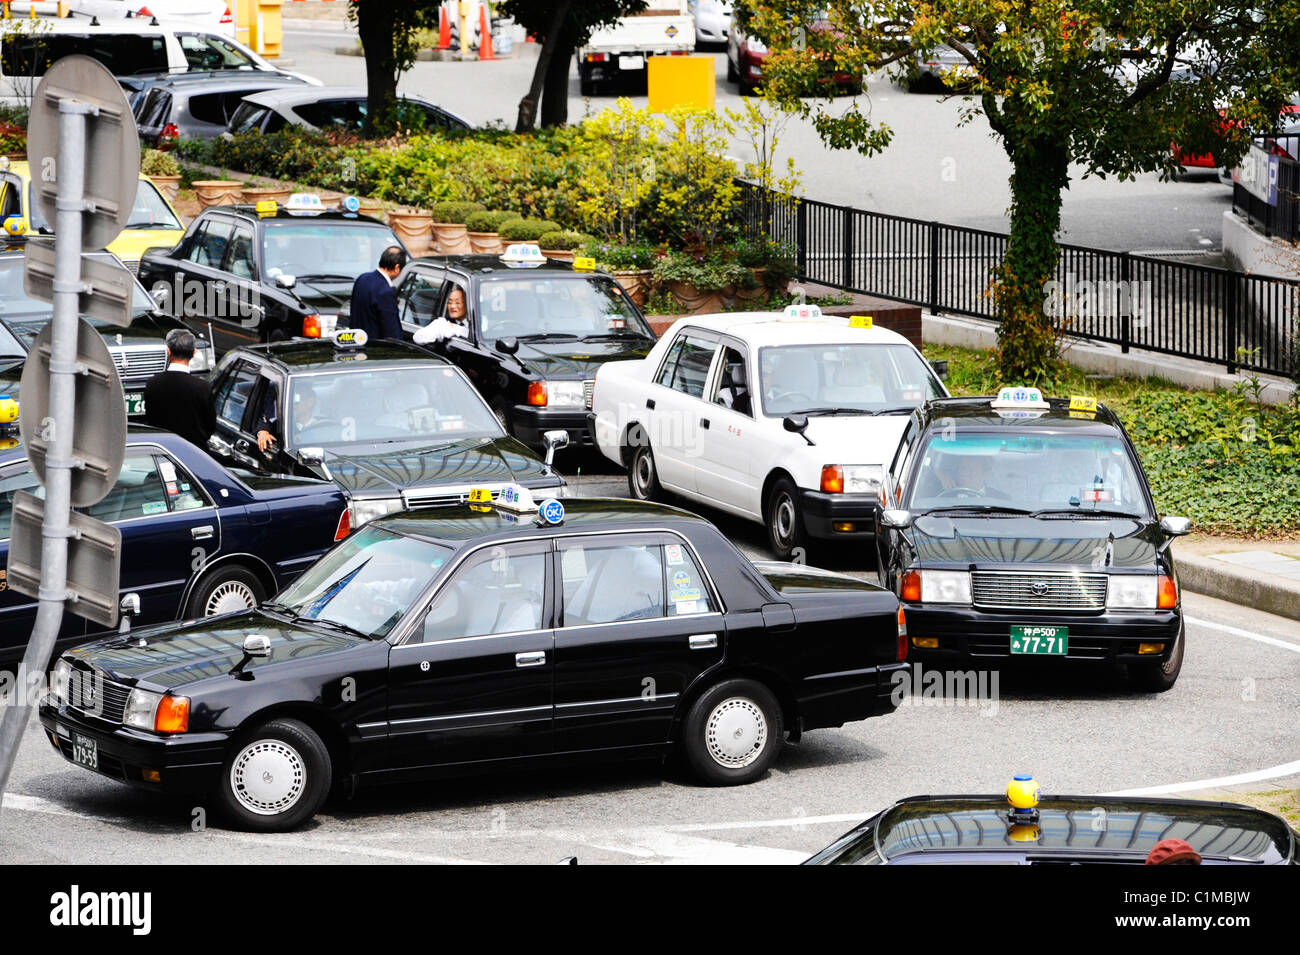 Taxis waiting for passengers in Kobe, Japan - Stock Image